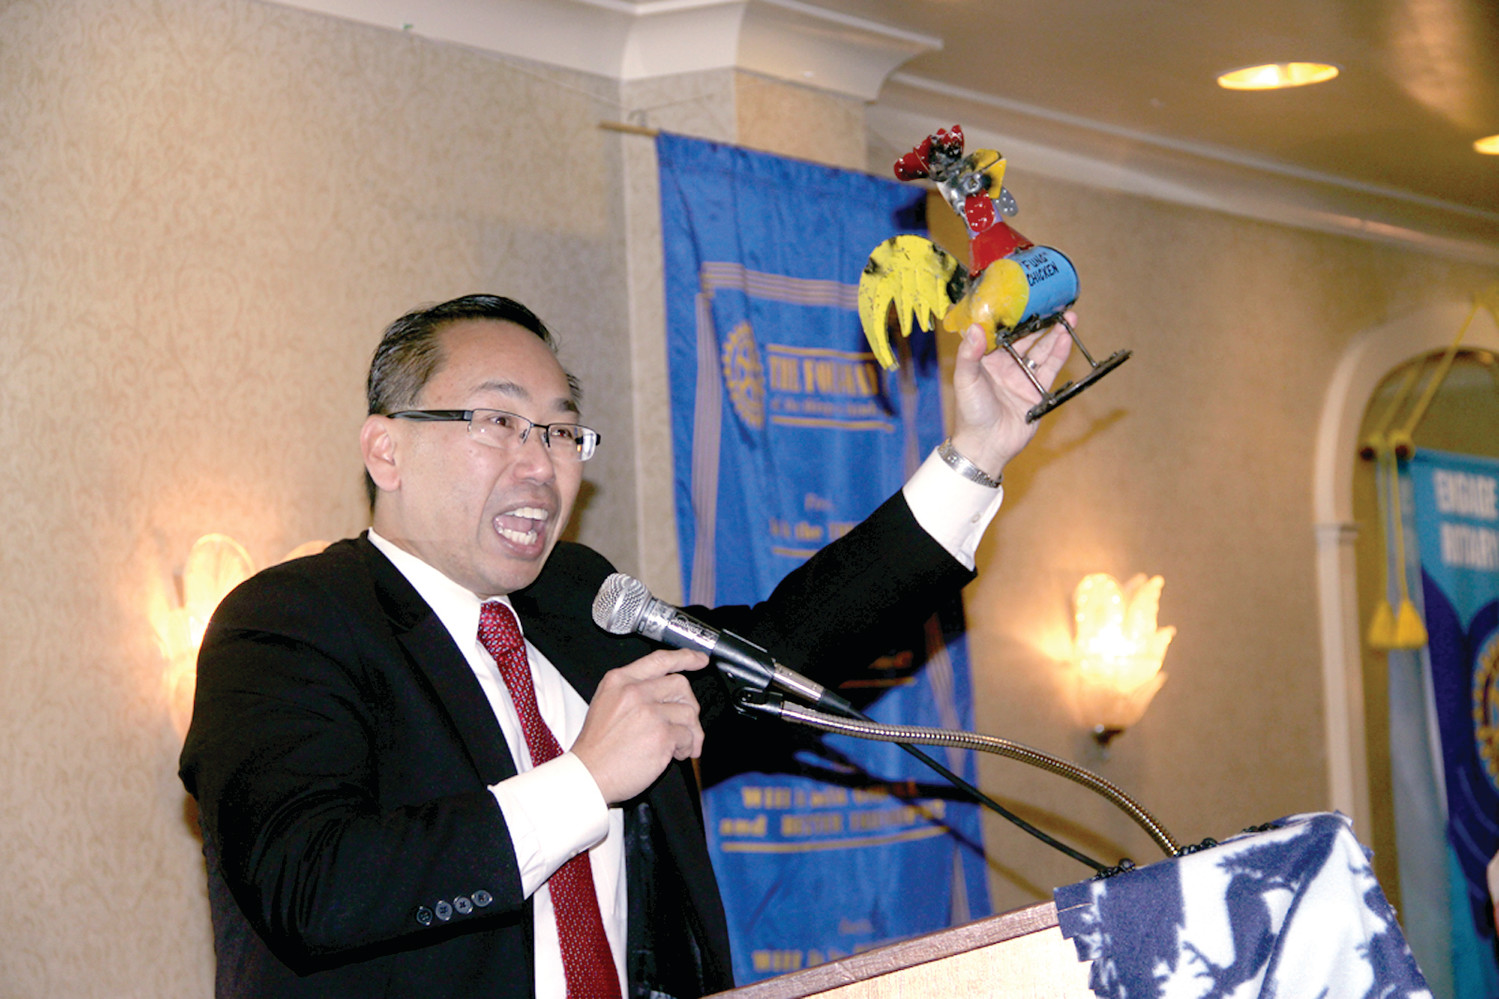 THE CHICKEN ORDINANCE: Cranston Mayor Allan Fung brought along his own props, including a chicken, as he told how both Cranston and Warwick wrestled with a chicken ordinance. He had a chicken hat for Avedisian, but the mayor didn't try it on.